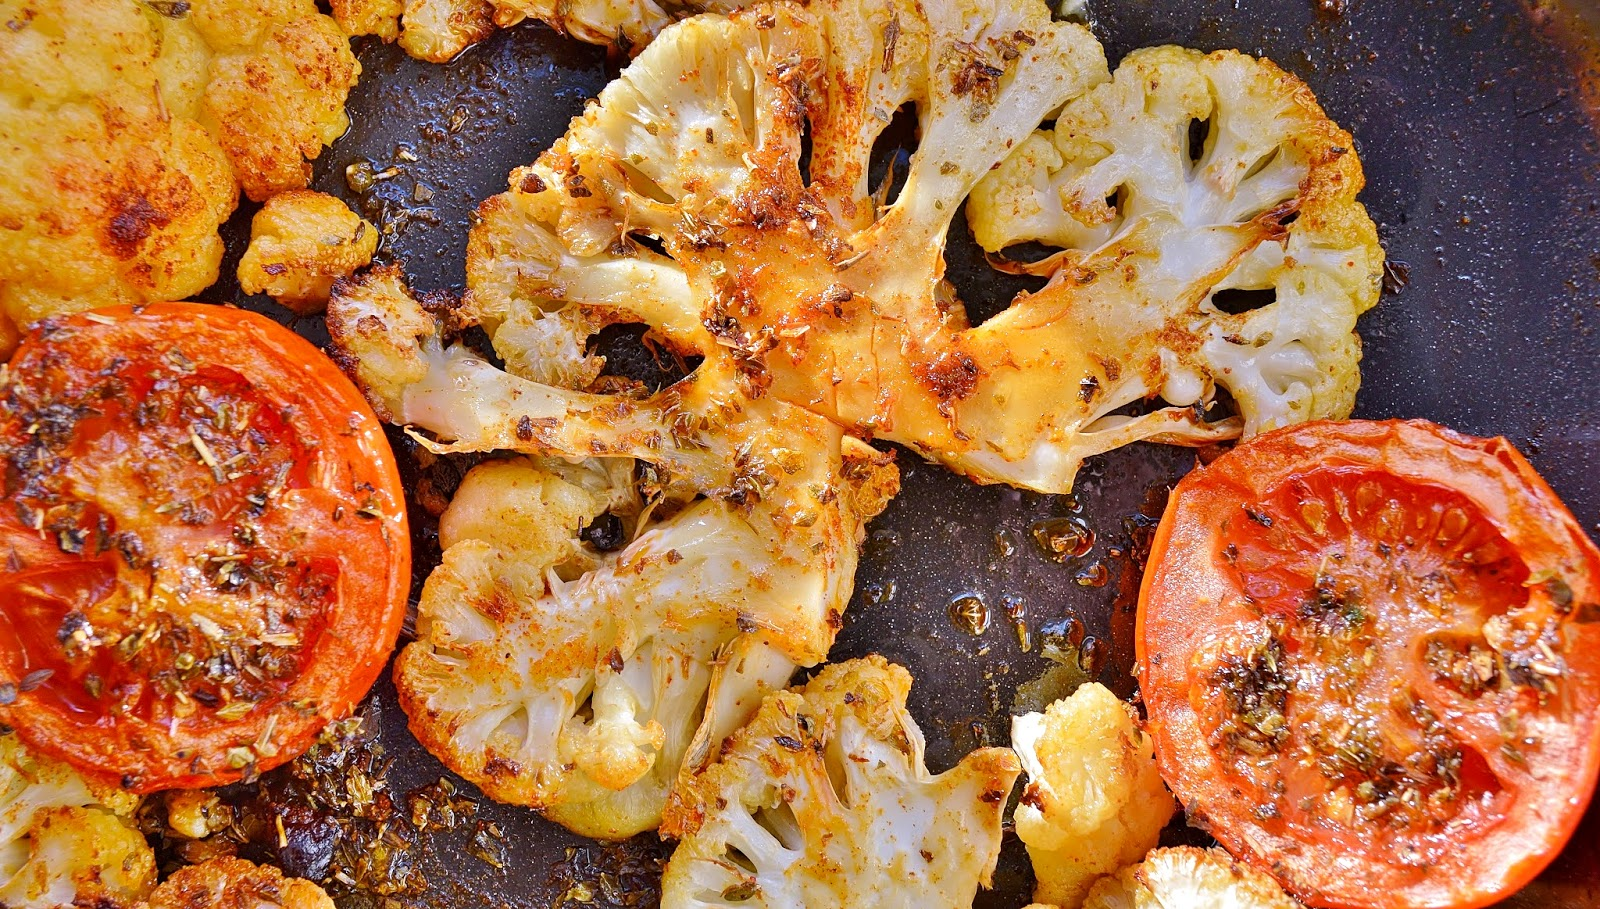 Roasted Cauliflower with Paprika and Oregano